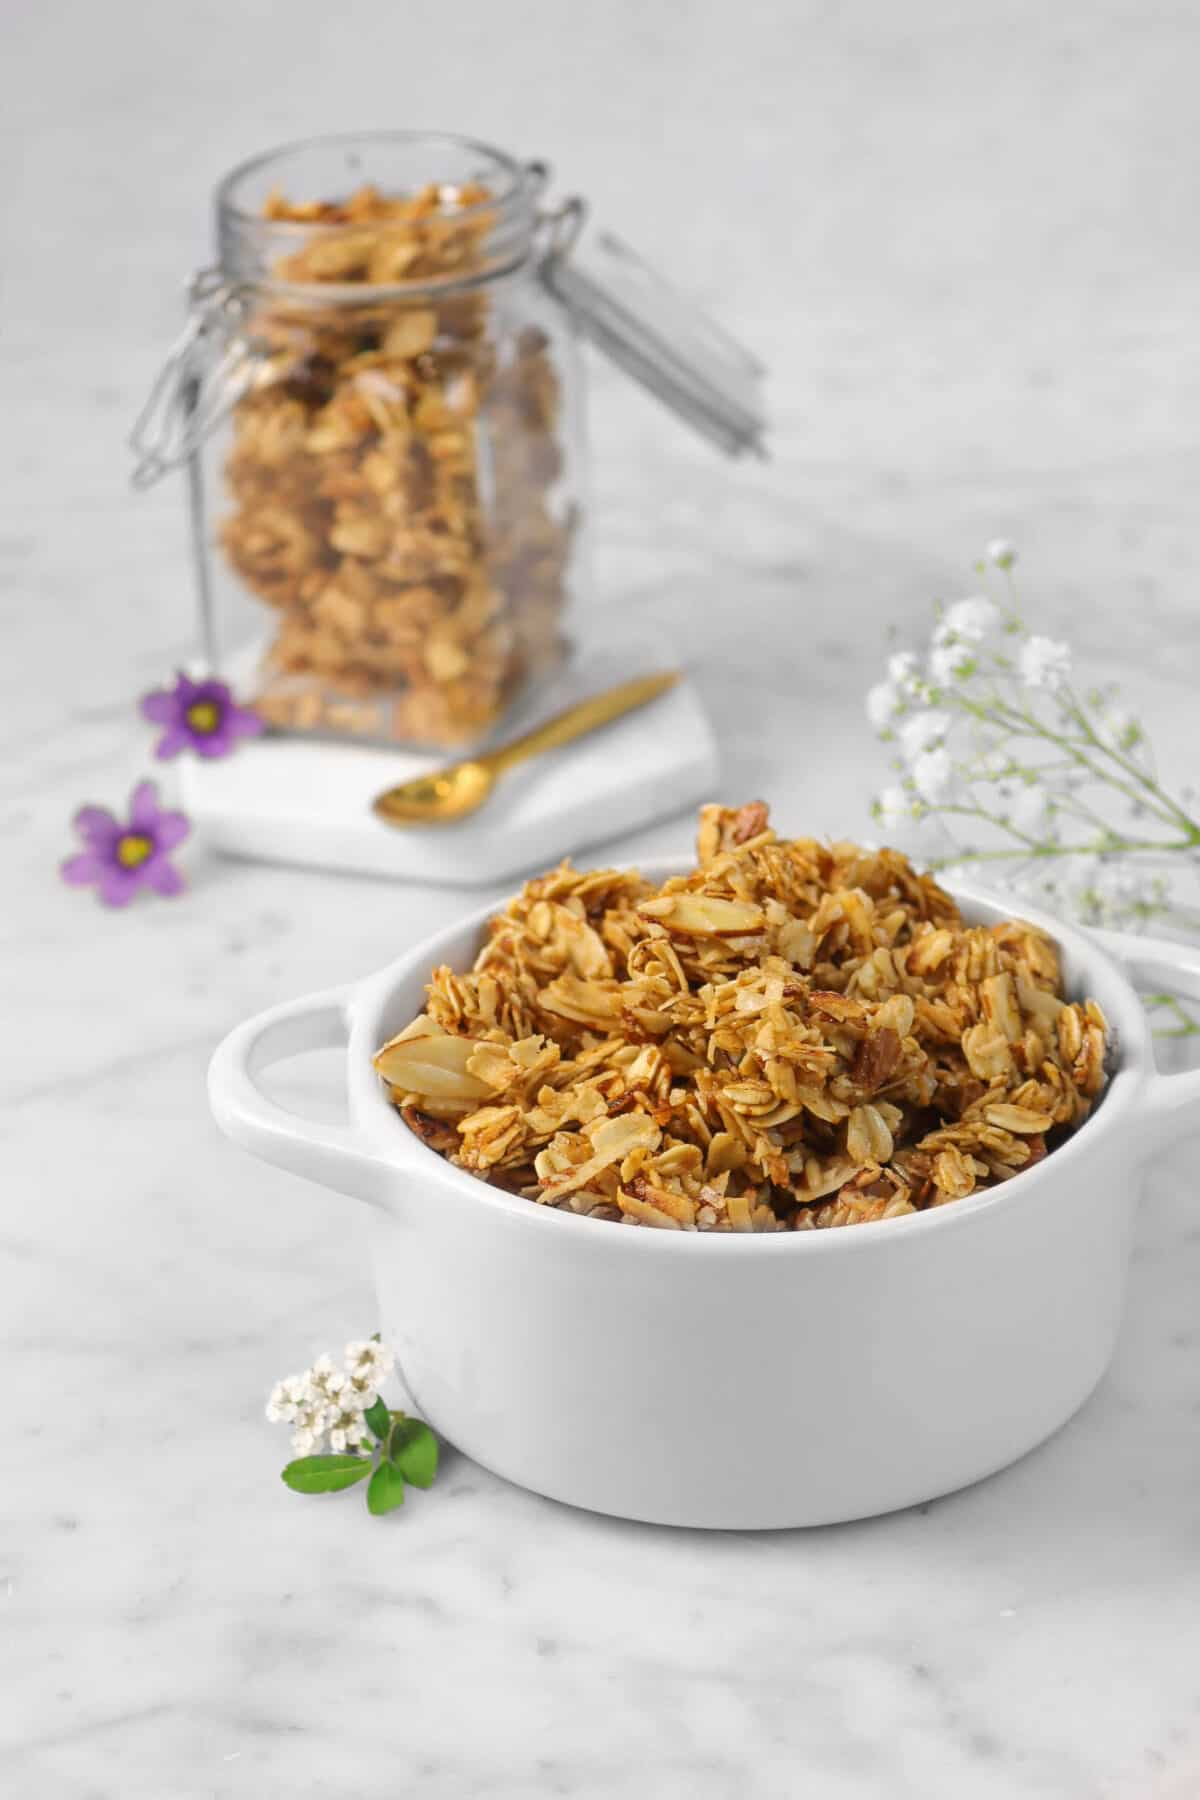 granola in a small white cocotte with fresh flowers, a gold spoon, and a jar of granola